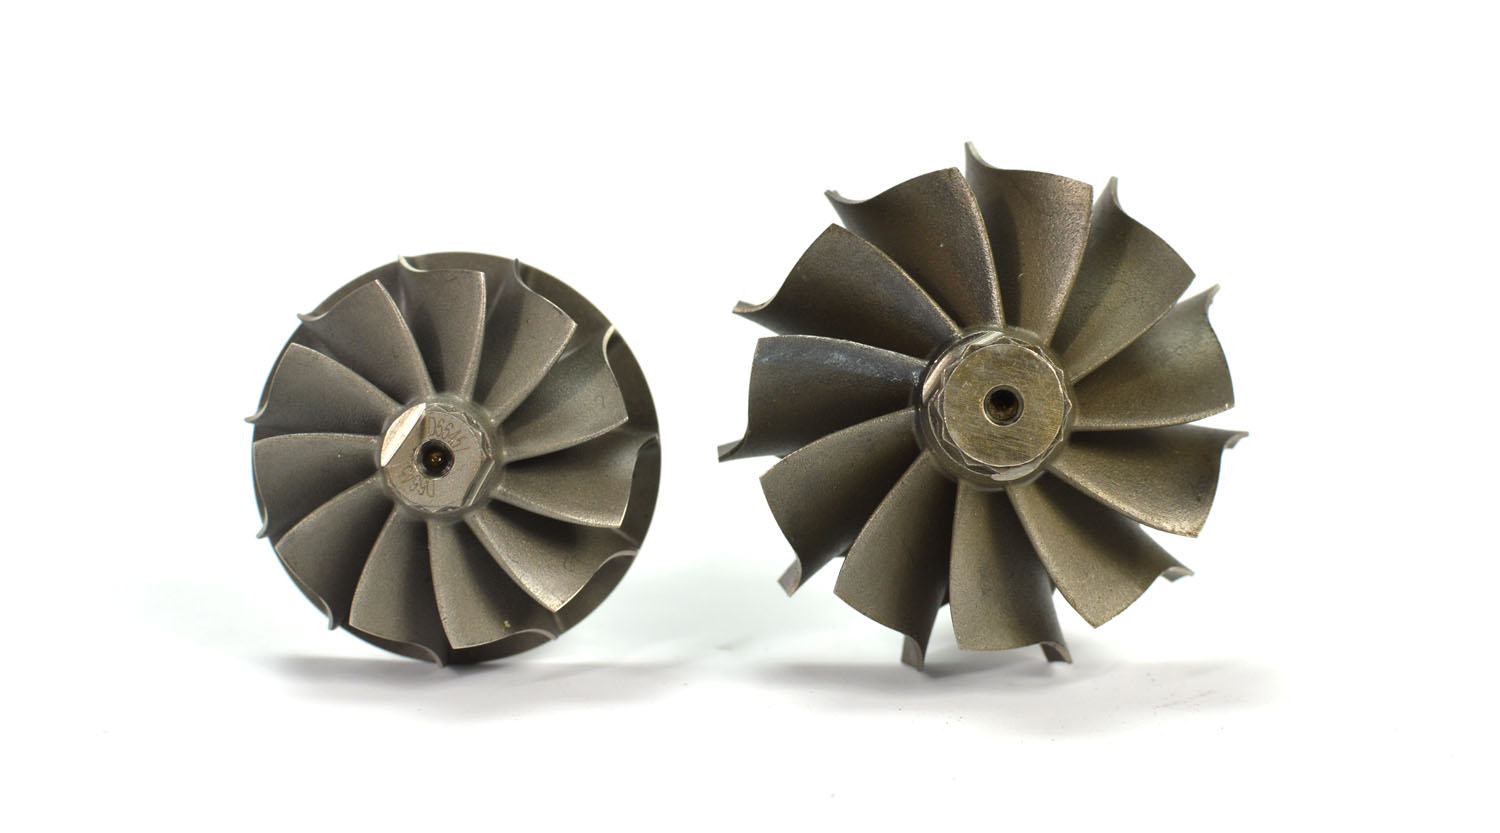 si-11-blade-wheel-oem-next-to-big-turbo-11-blade-wheel